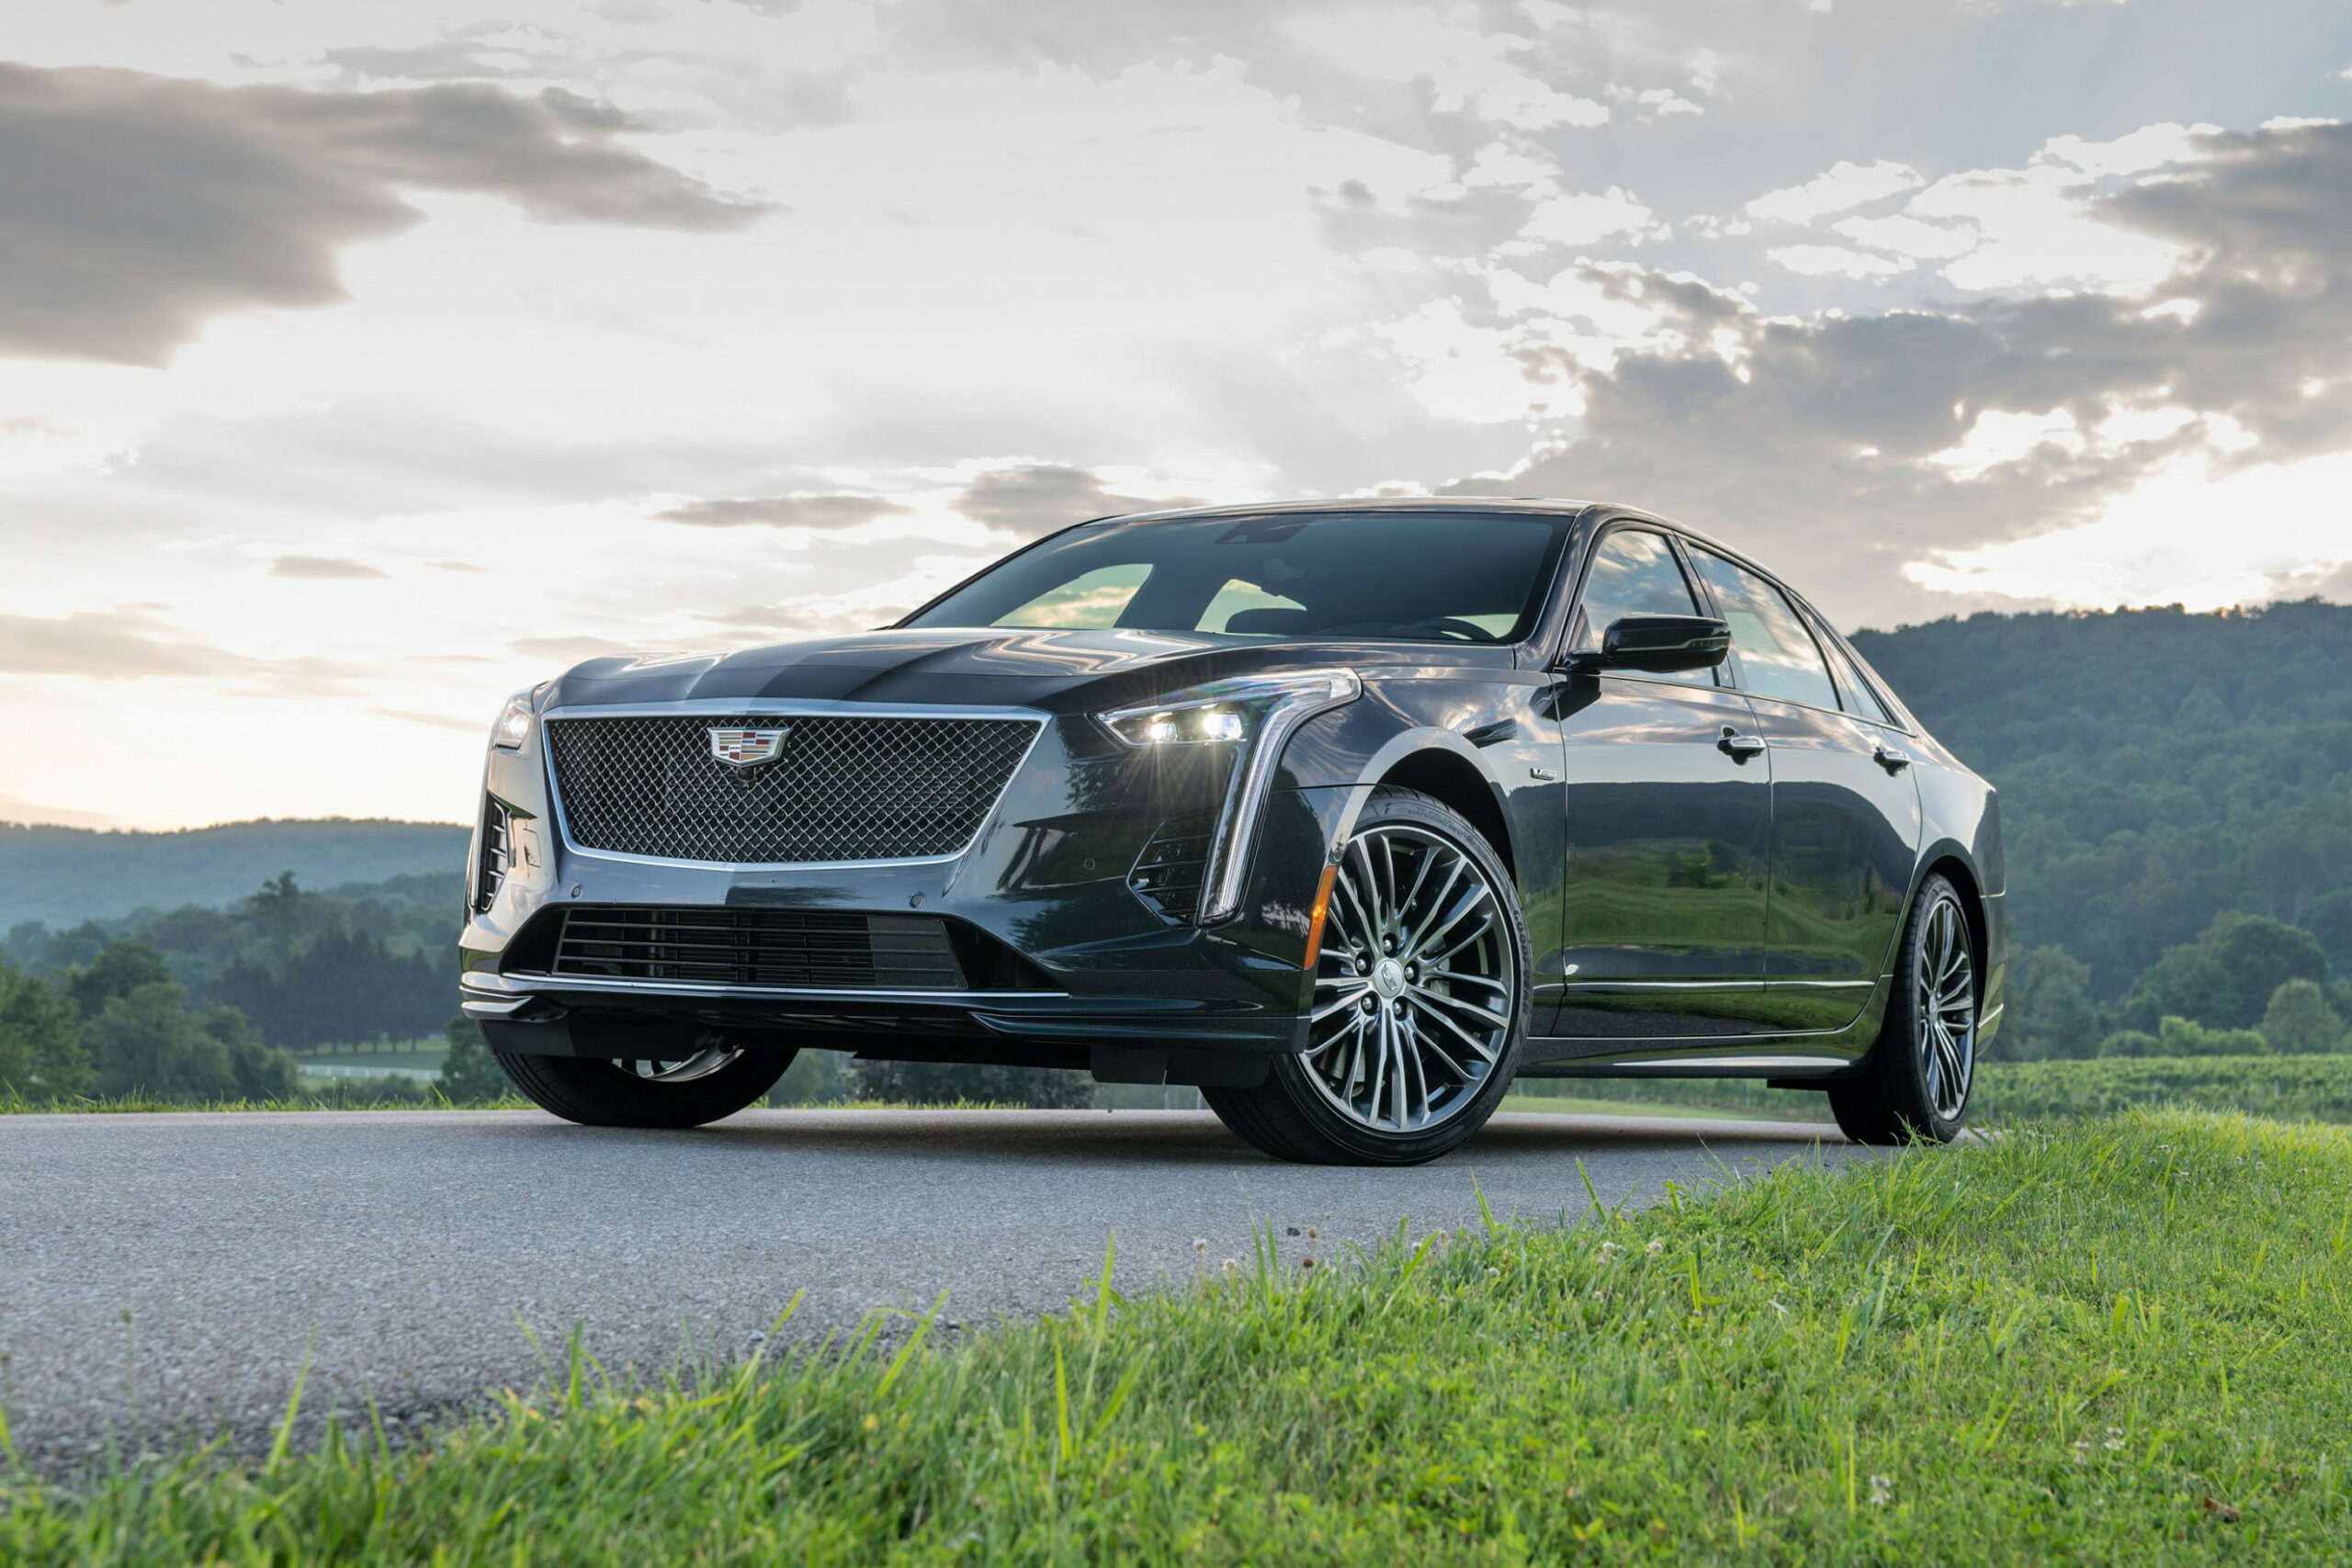 6 Cadillac CT6-V First Drive Review